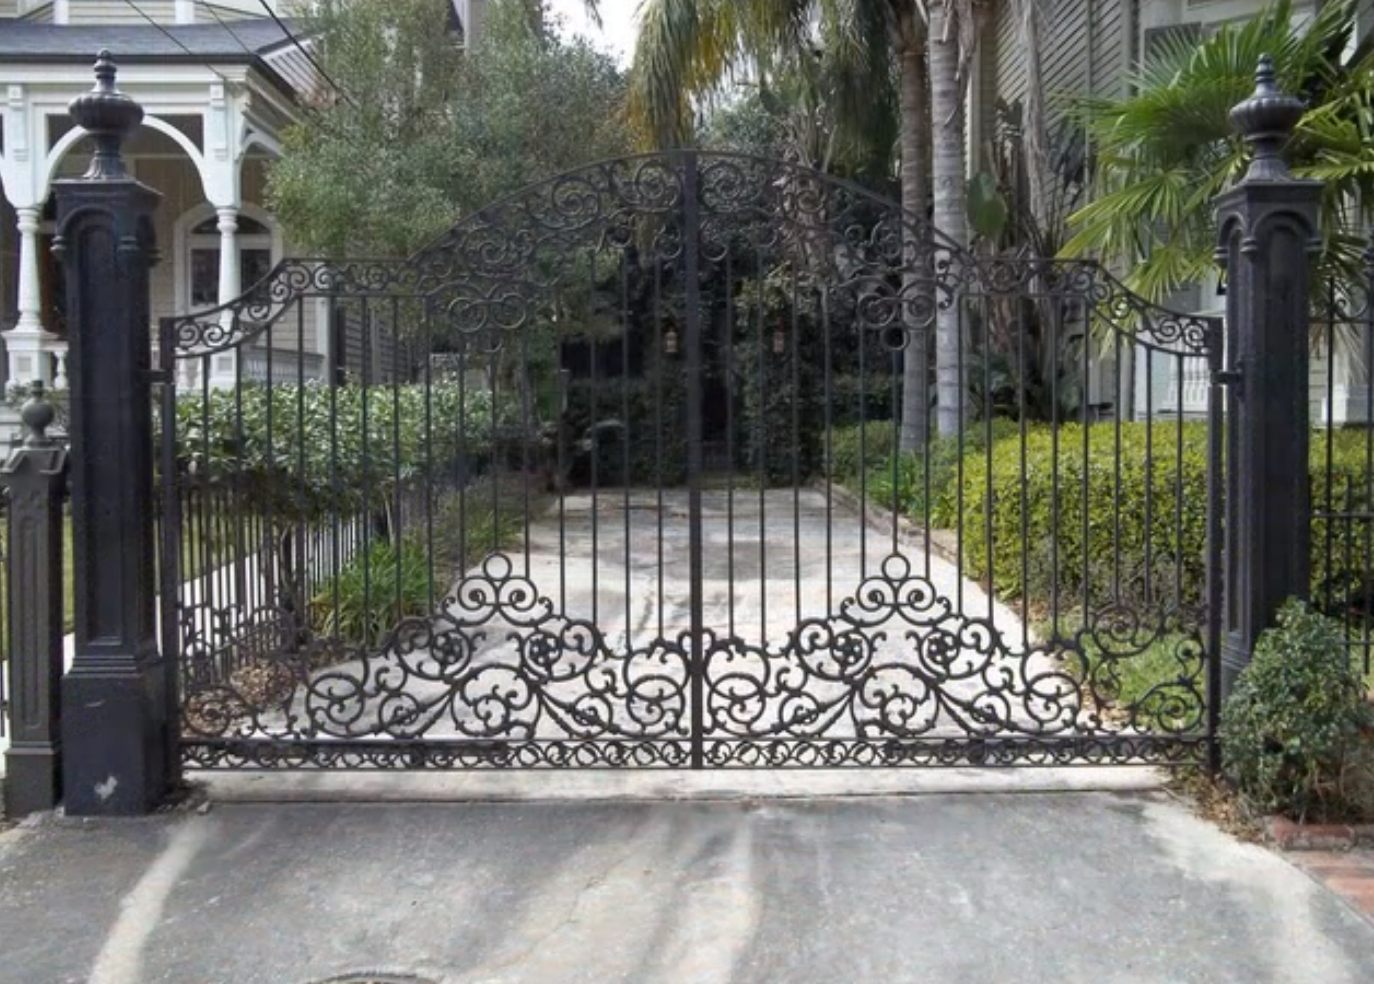 Wrought Iron Gates: Pin By The Wanderer On Garden.Gates